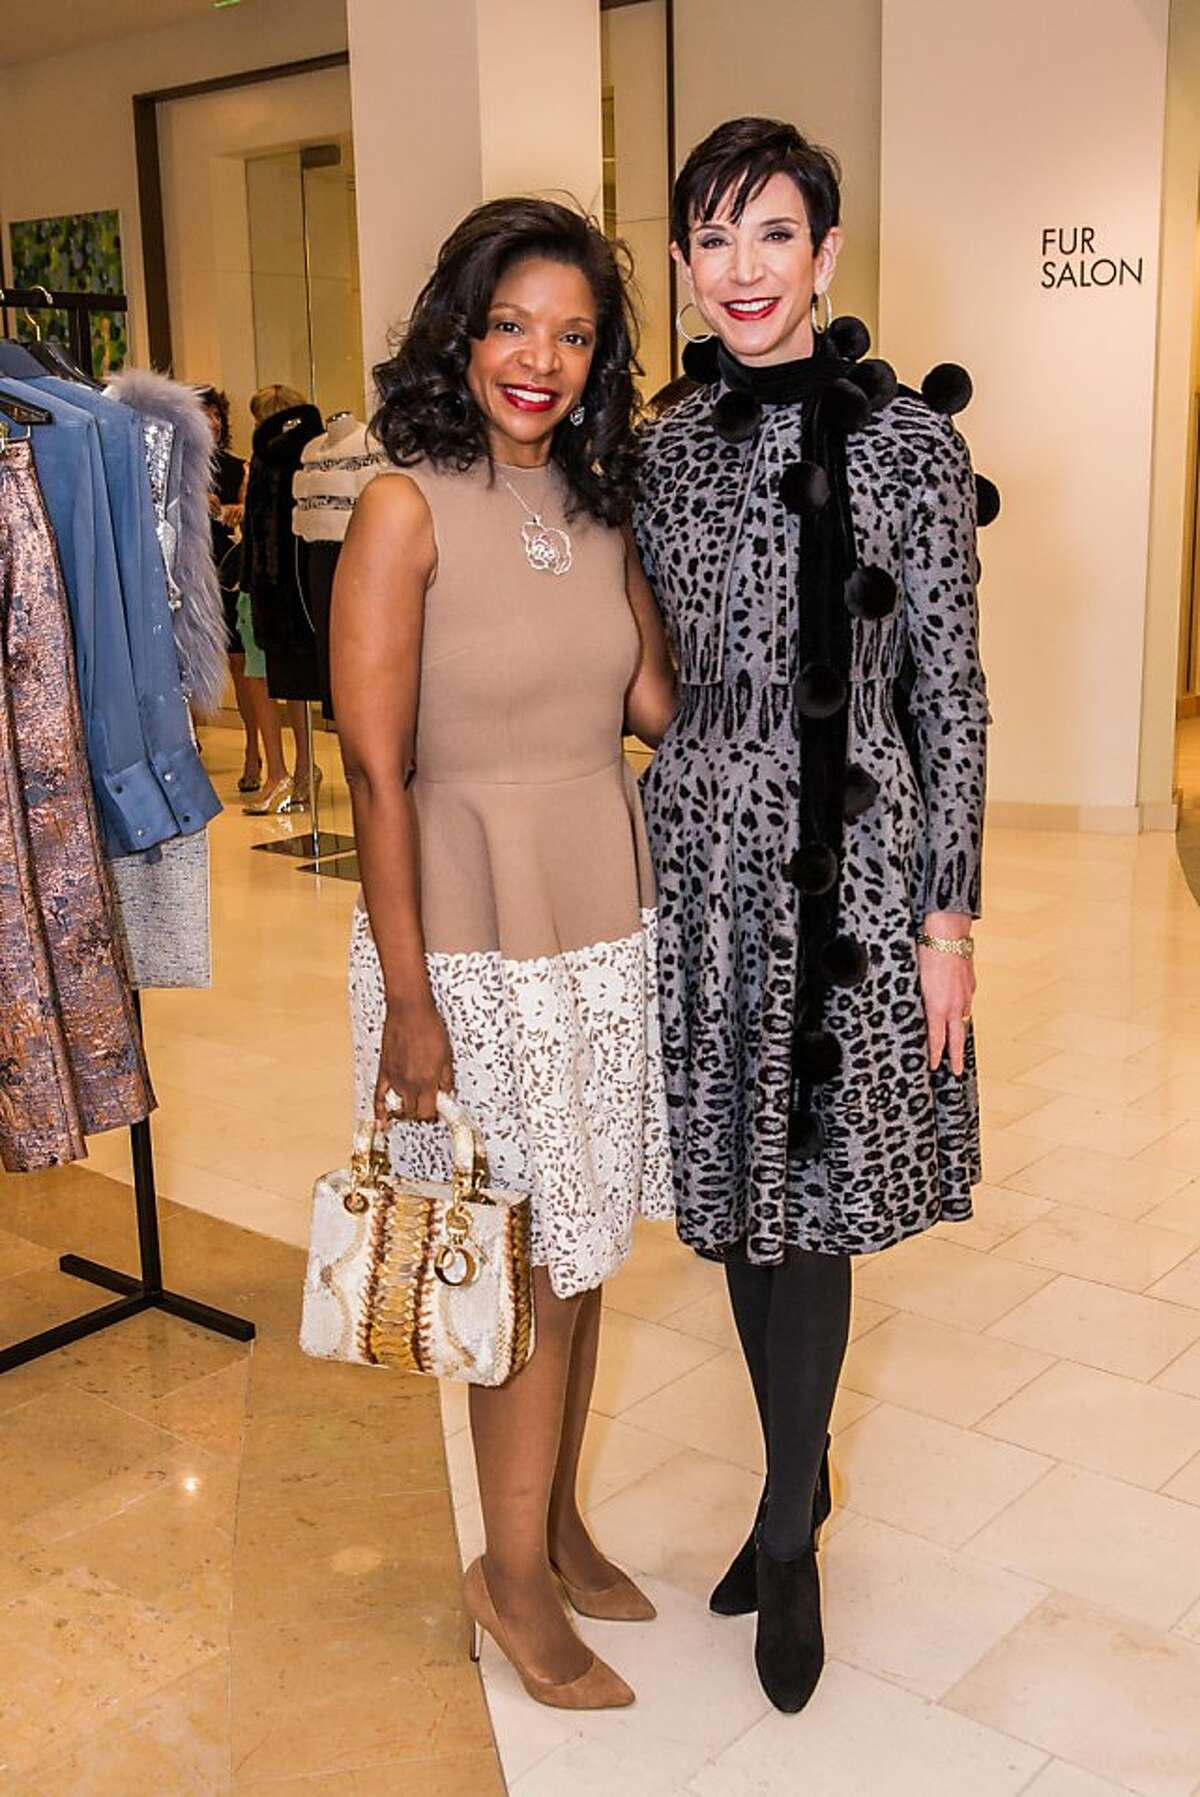 Vanity Fair introduced new rules for its International Best-Dressed List balloting, and contributor Amy Fine Collins (in black and gray Azzedine Alaia dress) came to a lunch at Neiman Marcus March 7, 2013, to let San Francisco's stylish set in on the details. Collins is seen here with arts patron Pamela Joyner in a beige Dolce and Gabbana dress.